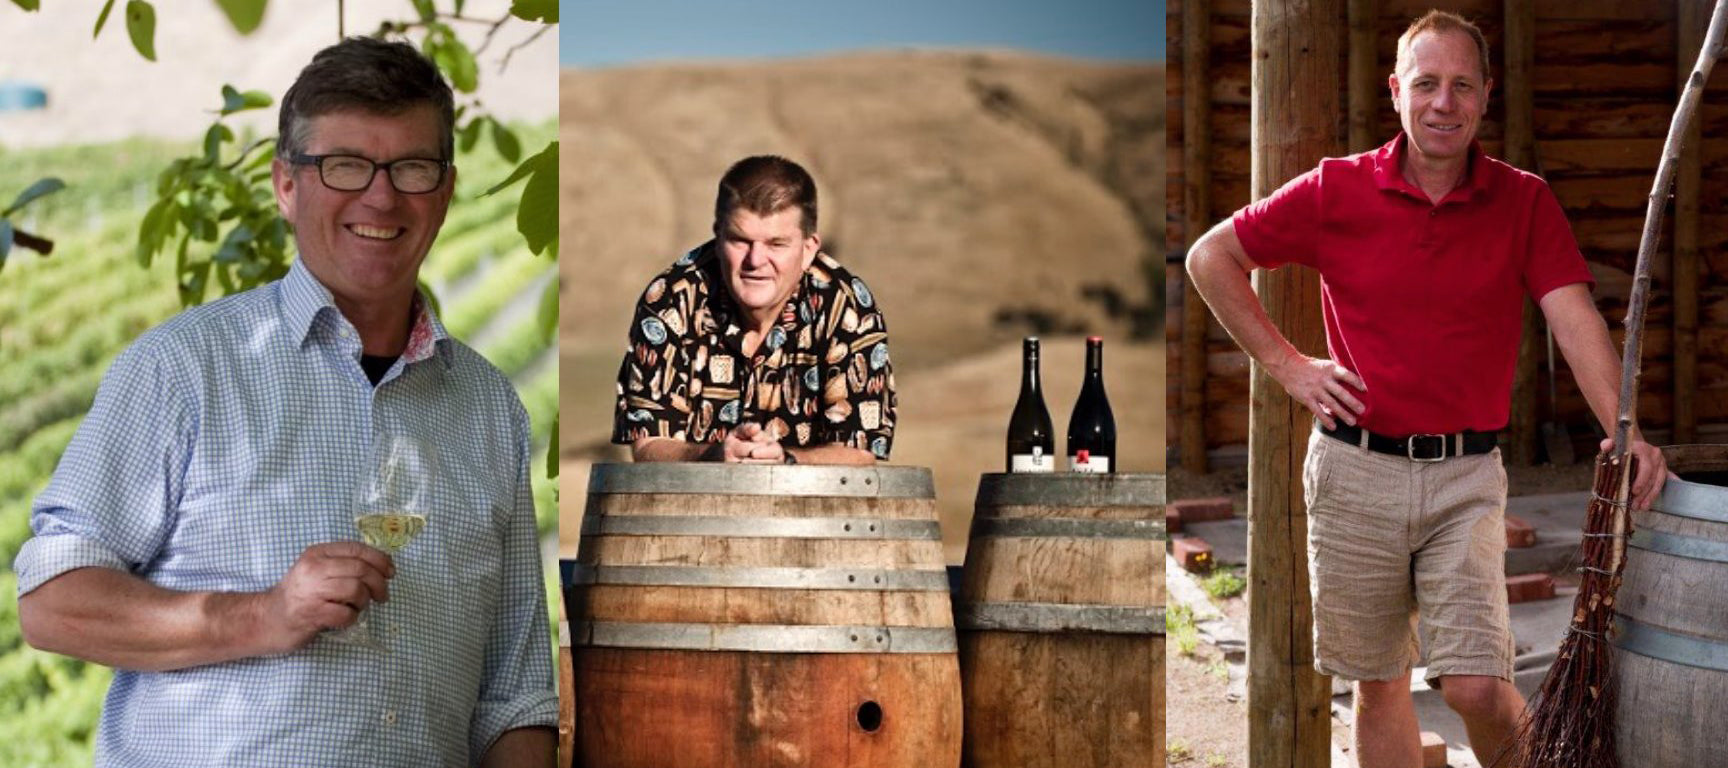 Winemaker Dinner Millton, Escarpment & Quartz Reef - Saturday 4 October, 6pm